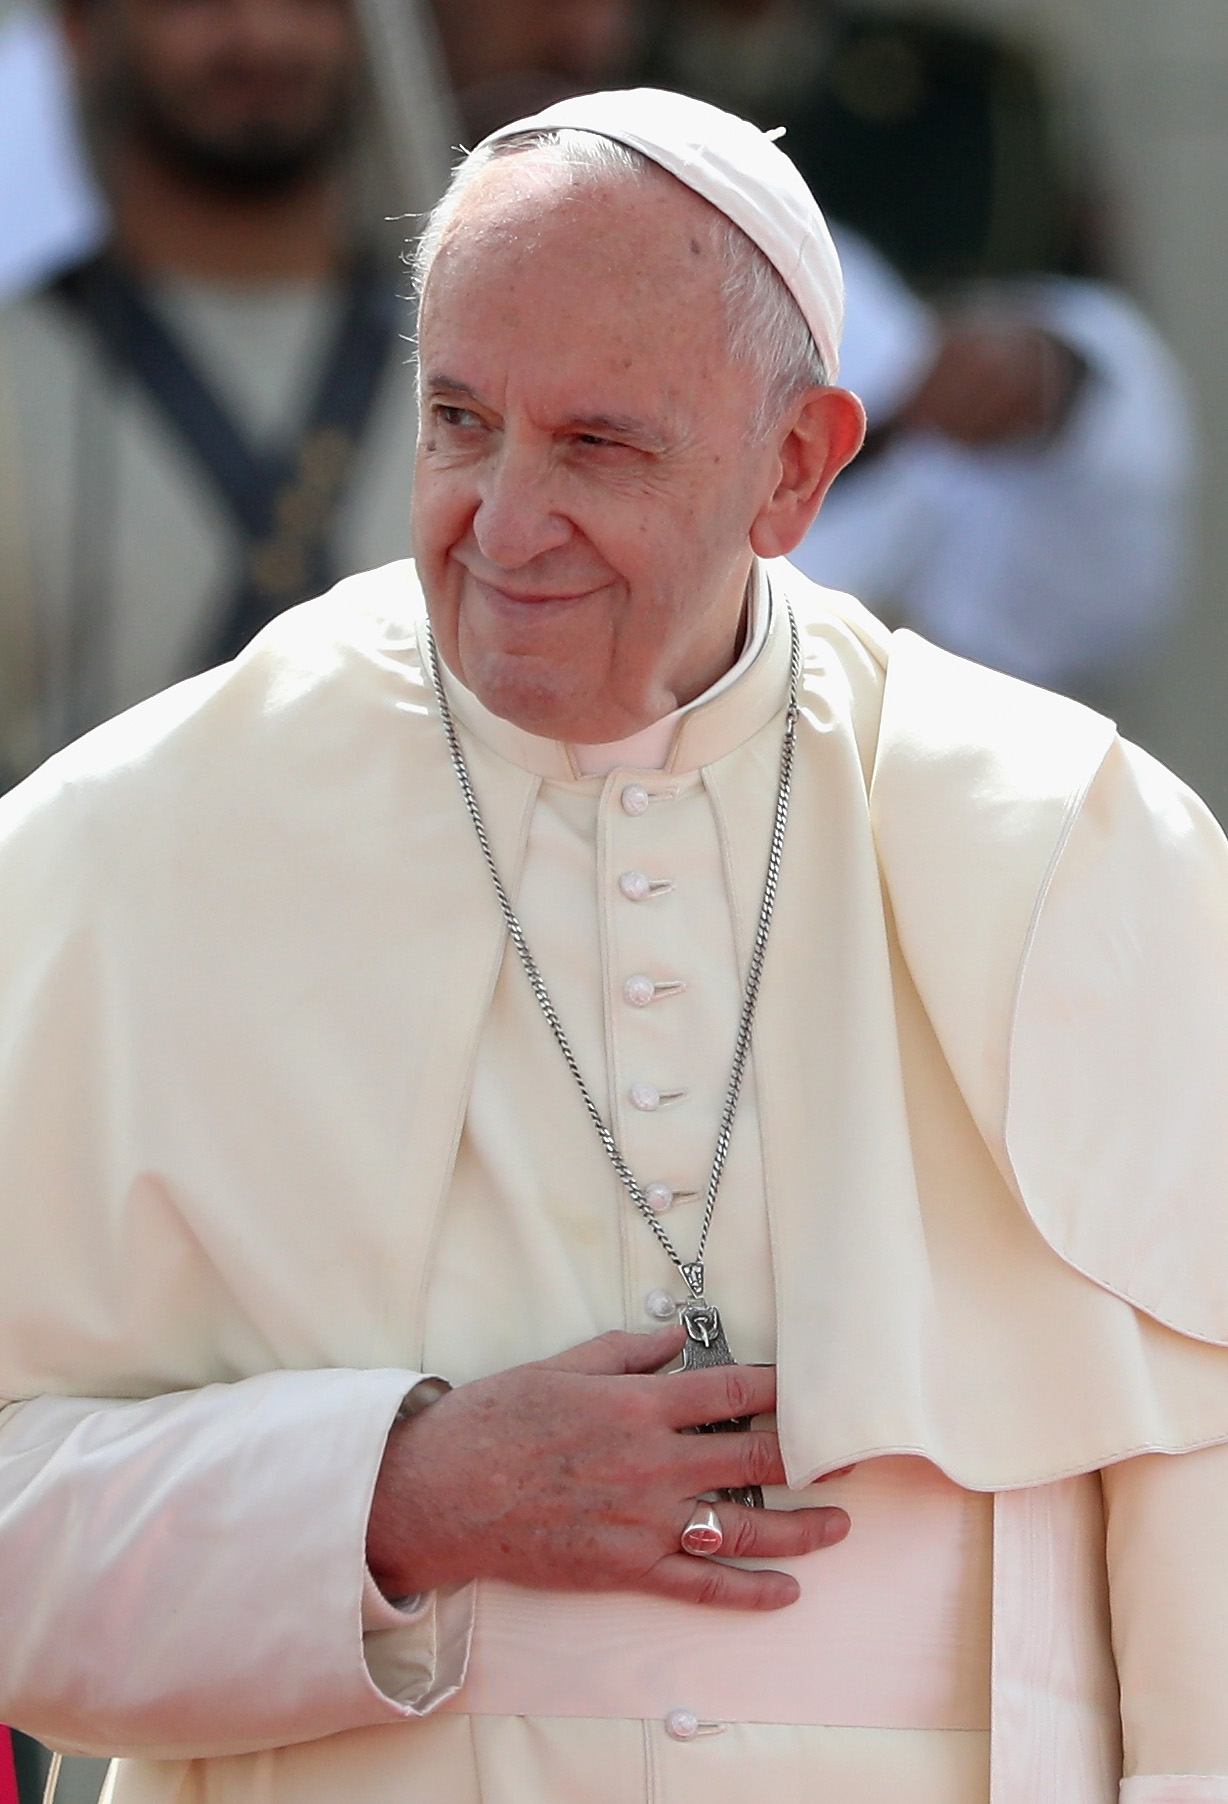 Pope Francis Donates $500,000 To Migrants At The U.S. Border